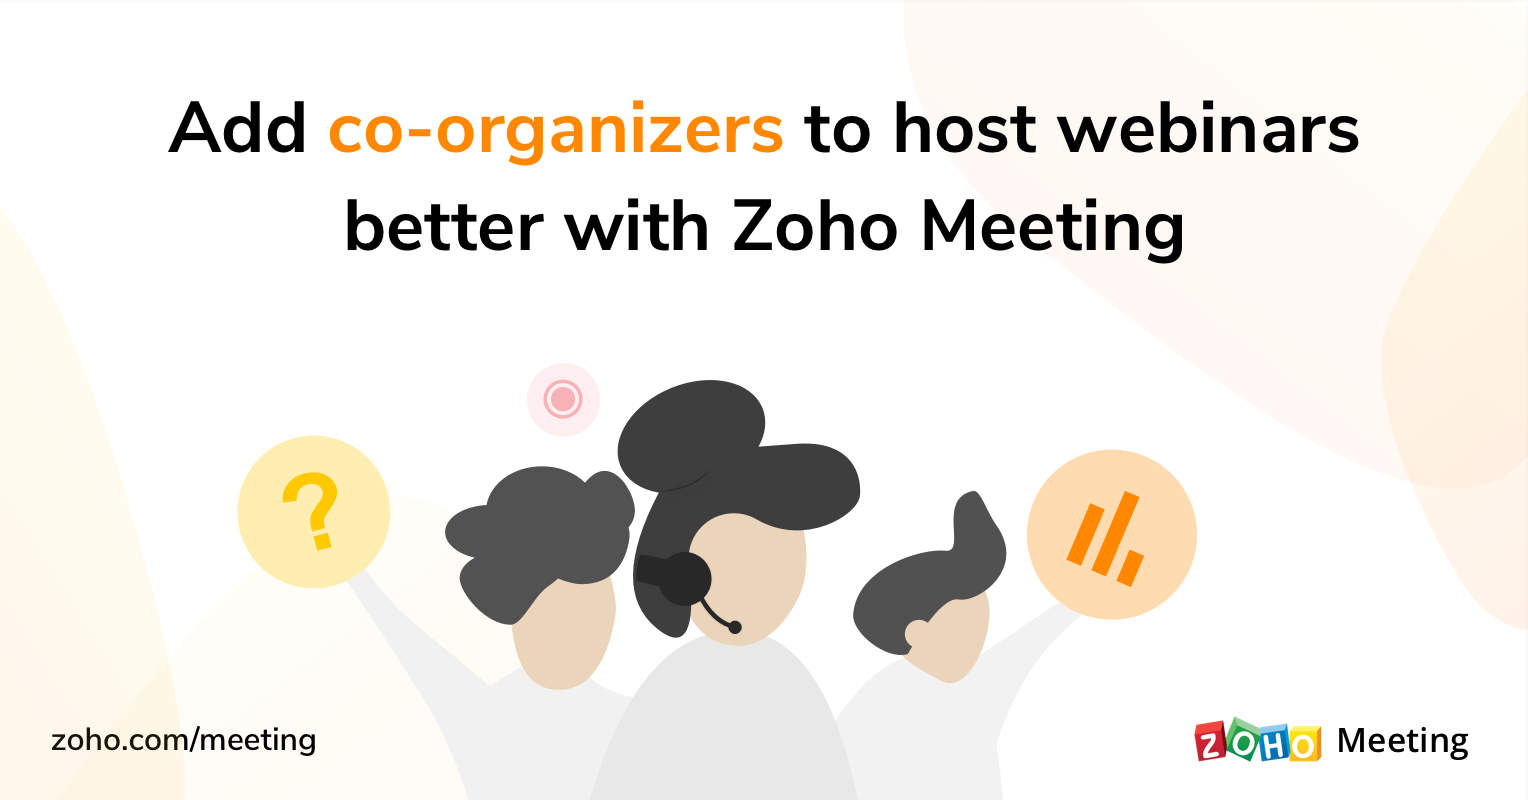 Add co-organizers to host webinars better using Zoho Meeting.